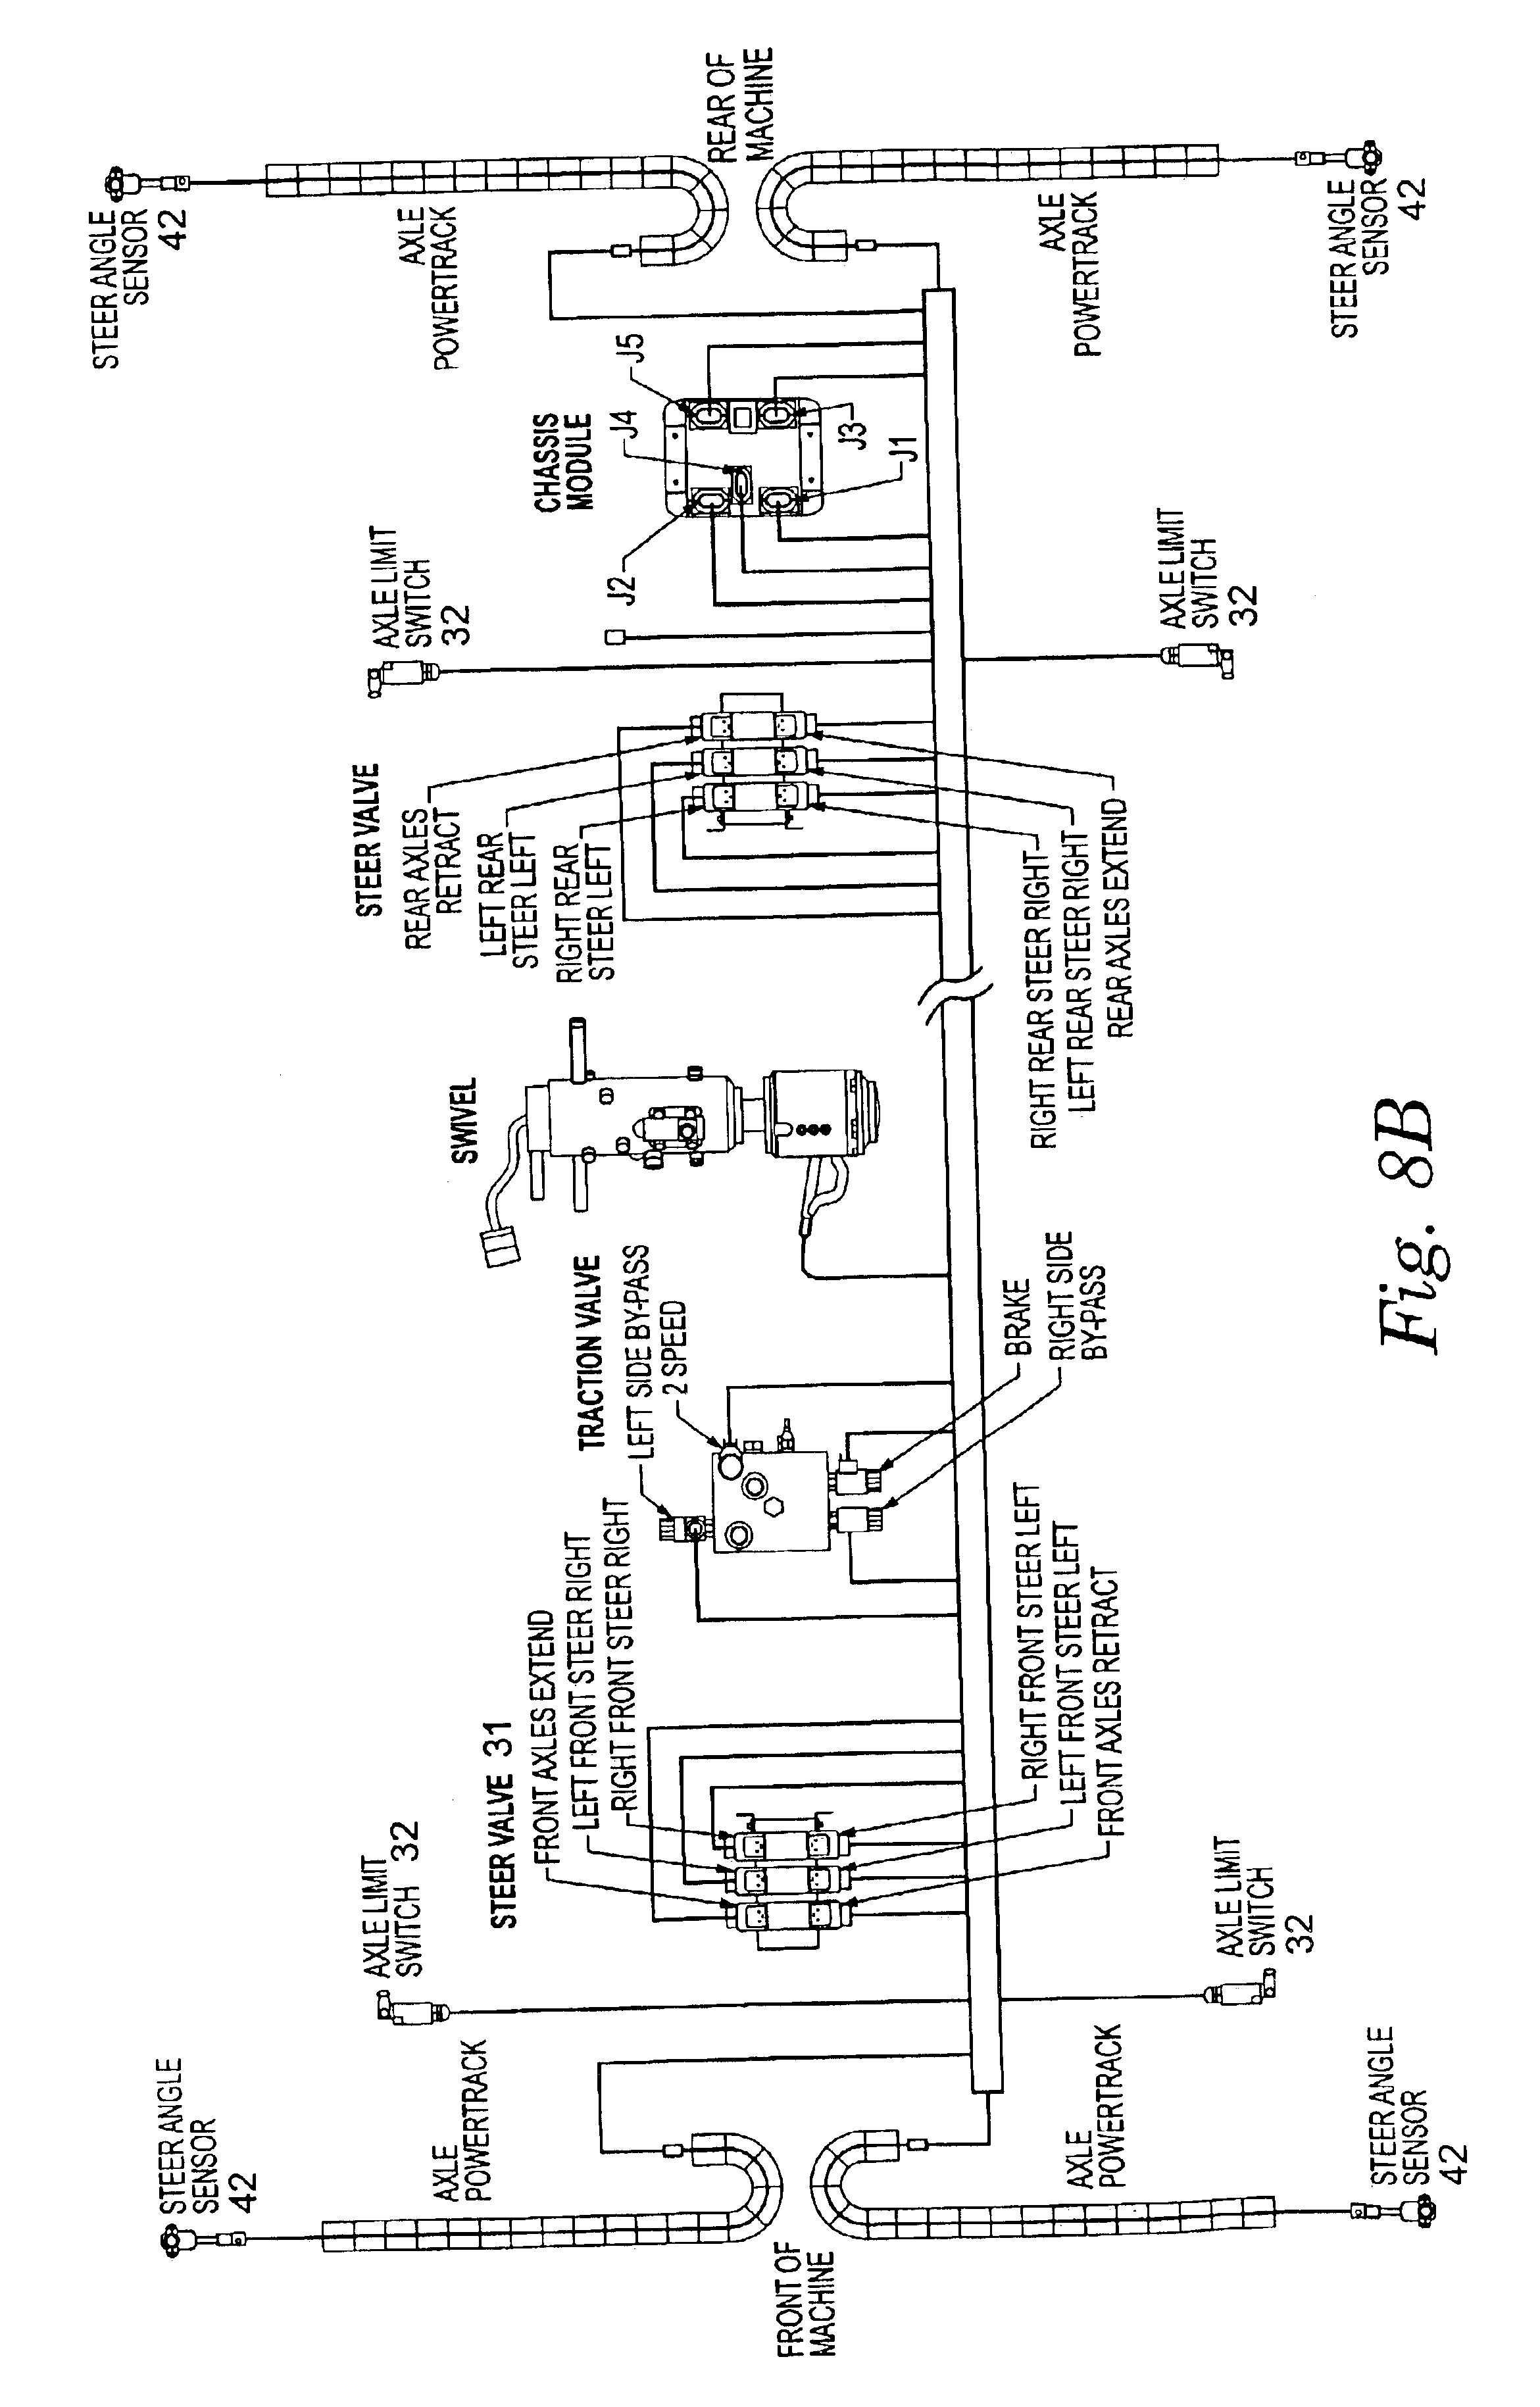 1984 Ford F150 Wiring Diagram Great Design Of Starter Front Suspension Autos Post Alternator